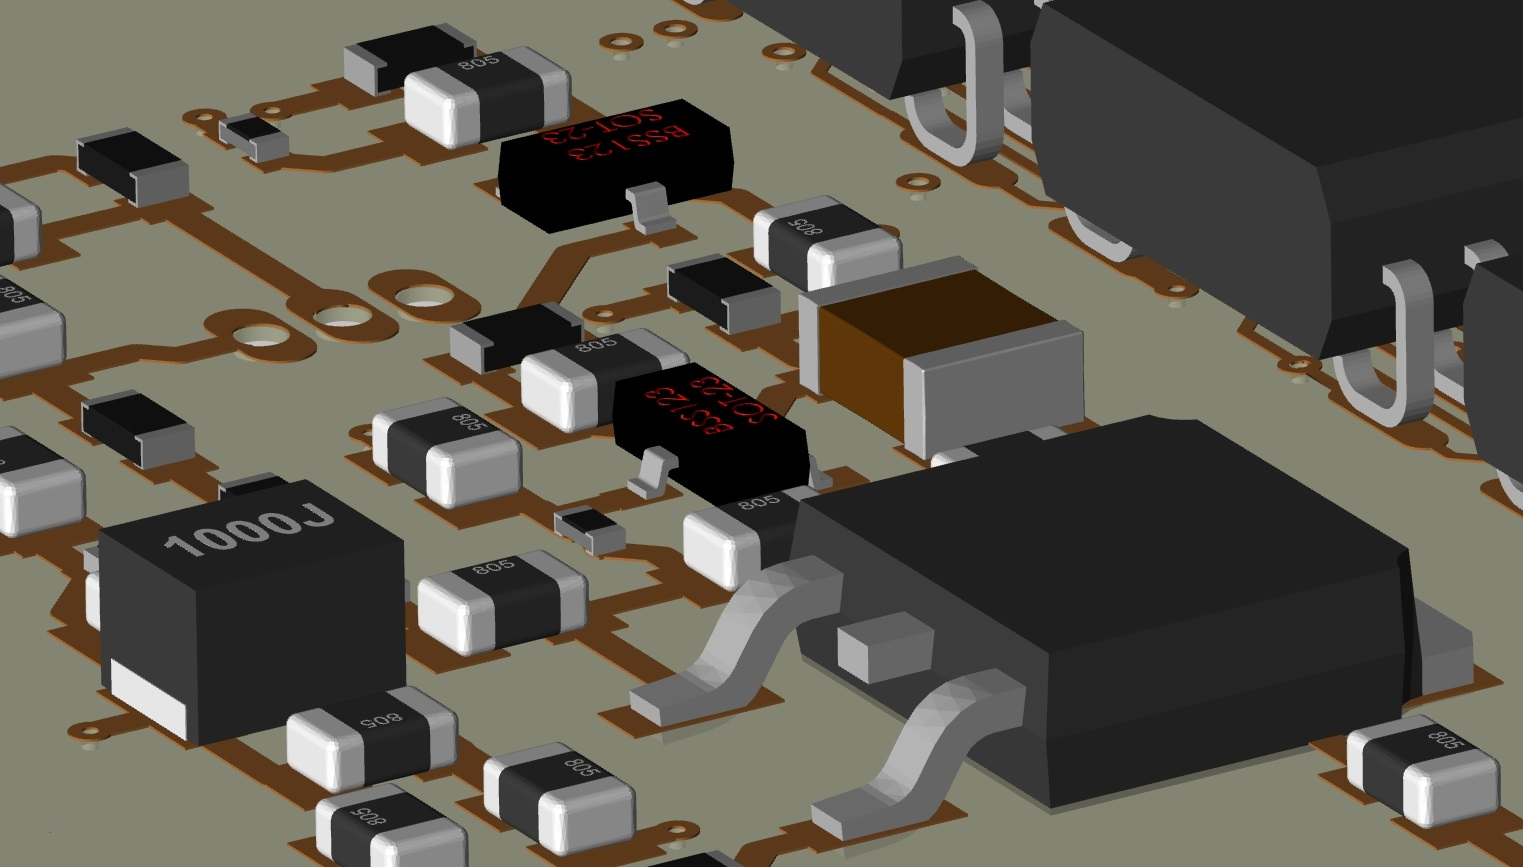 Screenshot of a 3D layout in Cadence Allegro showing PCB components